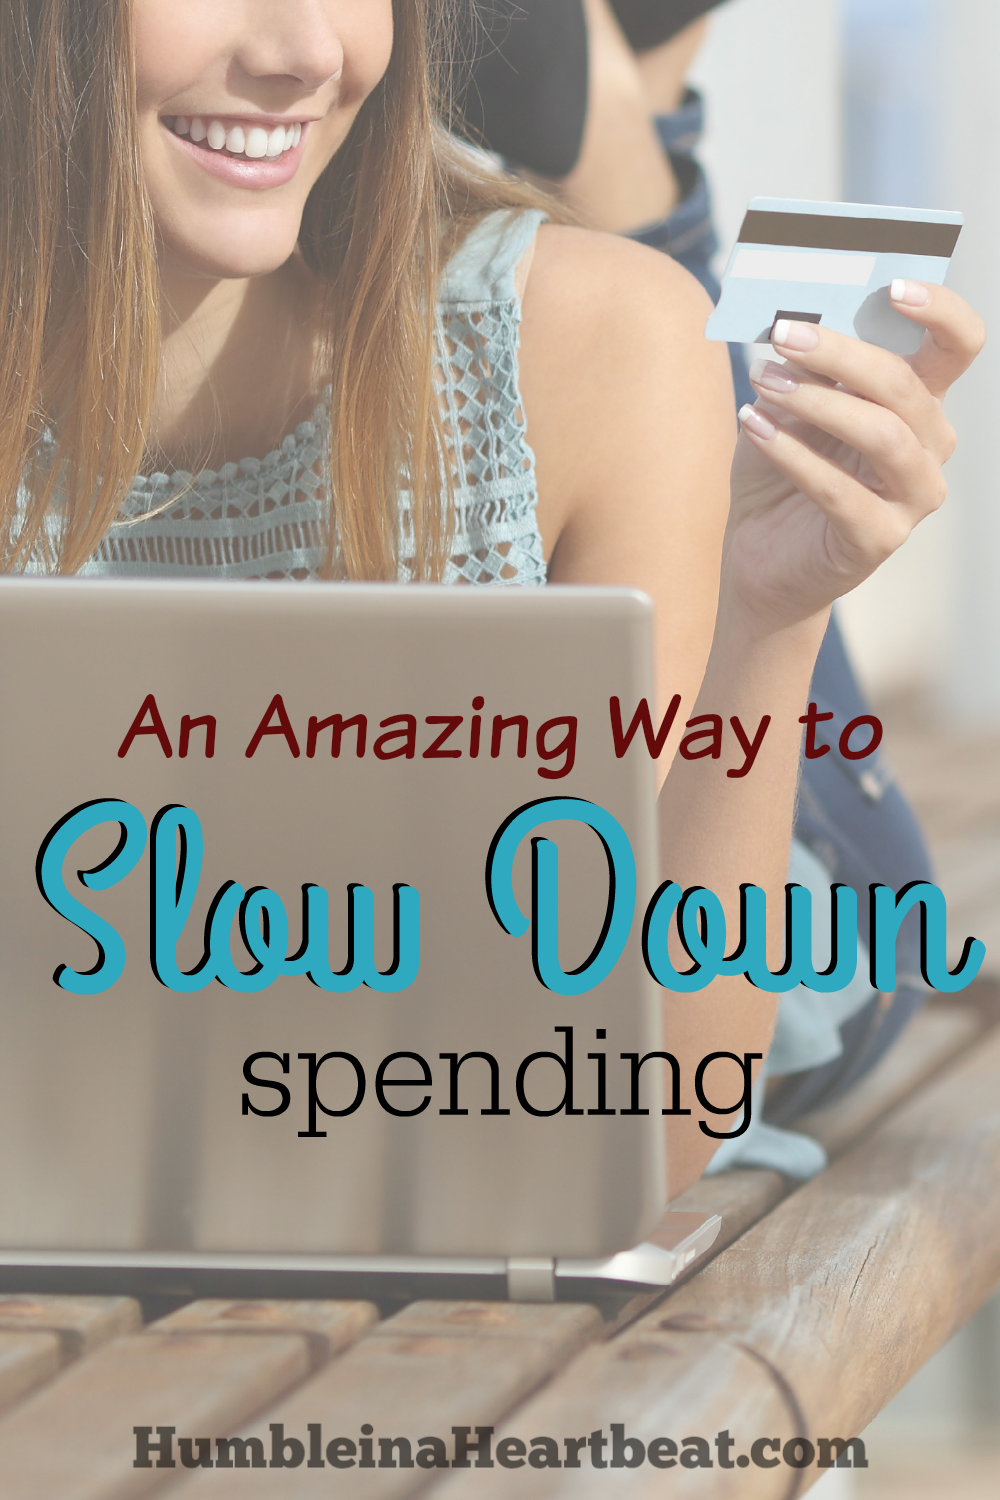 It's too easy to get into a mindset to spend, spend, spend, without even thinking twice. But if you're a little tired of all the stuff you have, and you want to scale back on your spending, maybe this little trick will work for you...